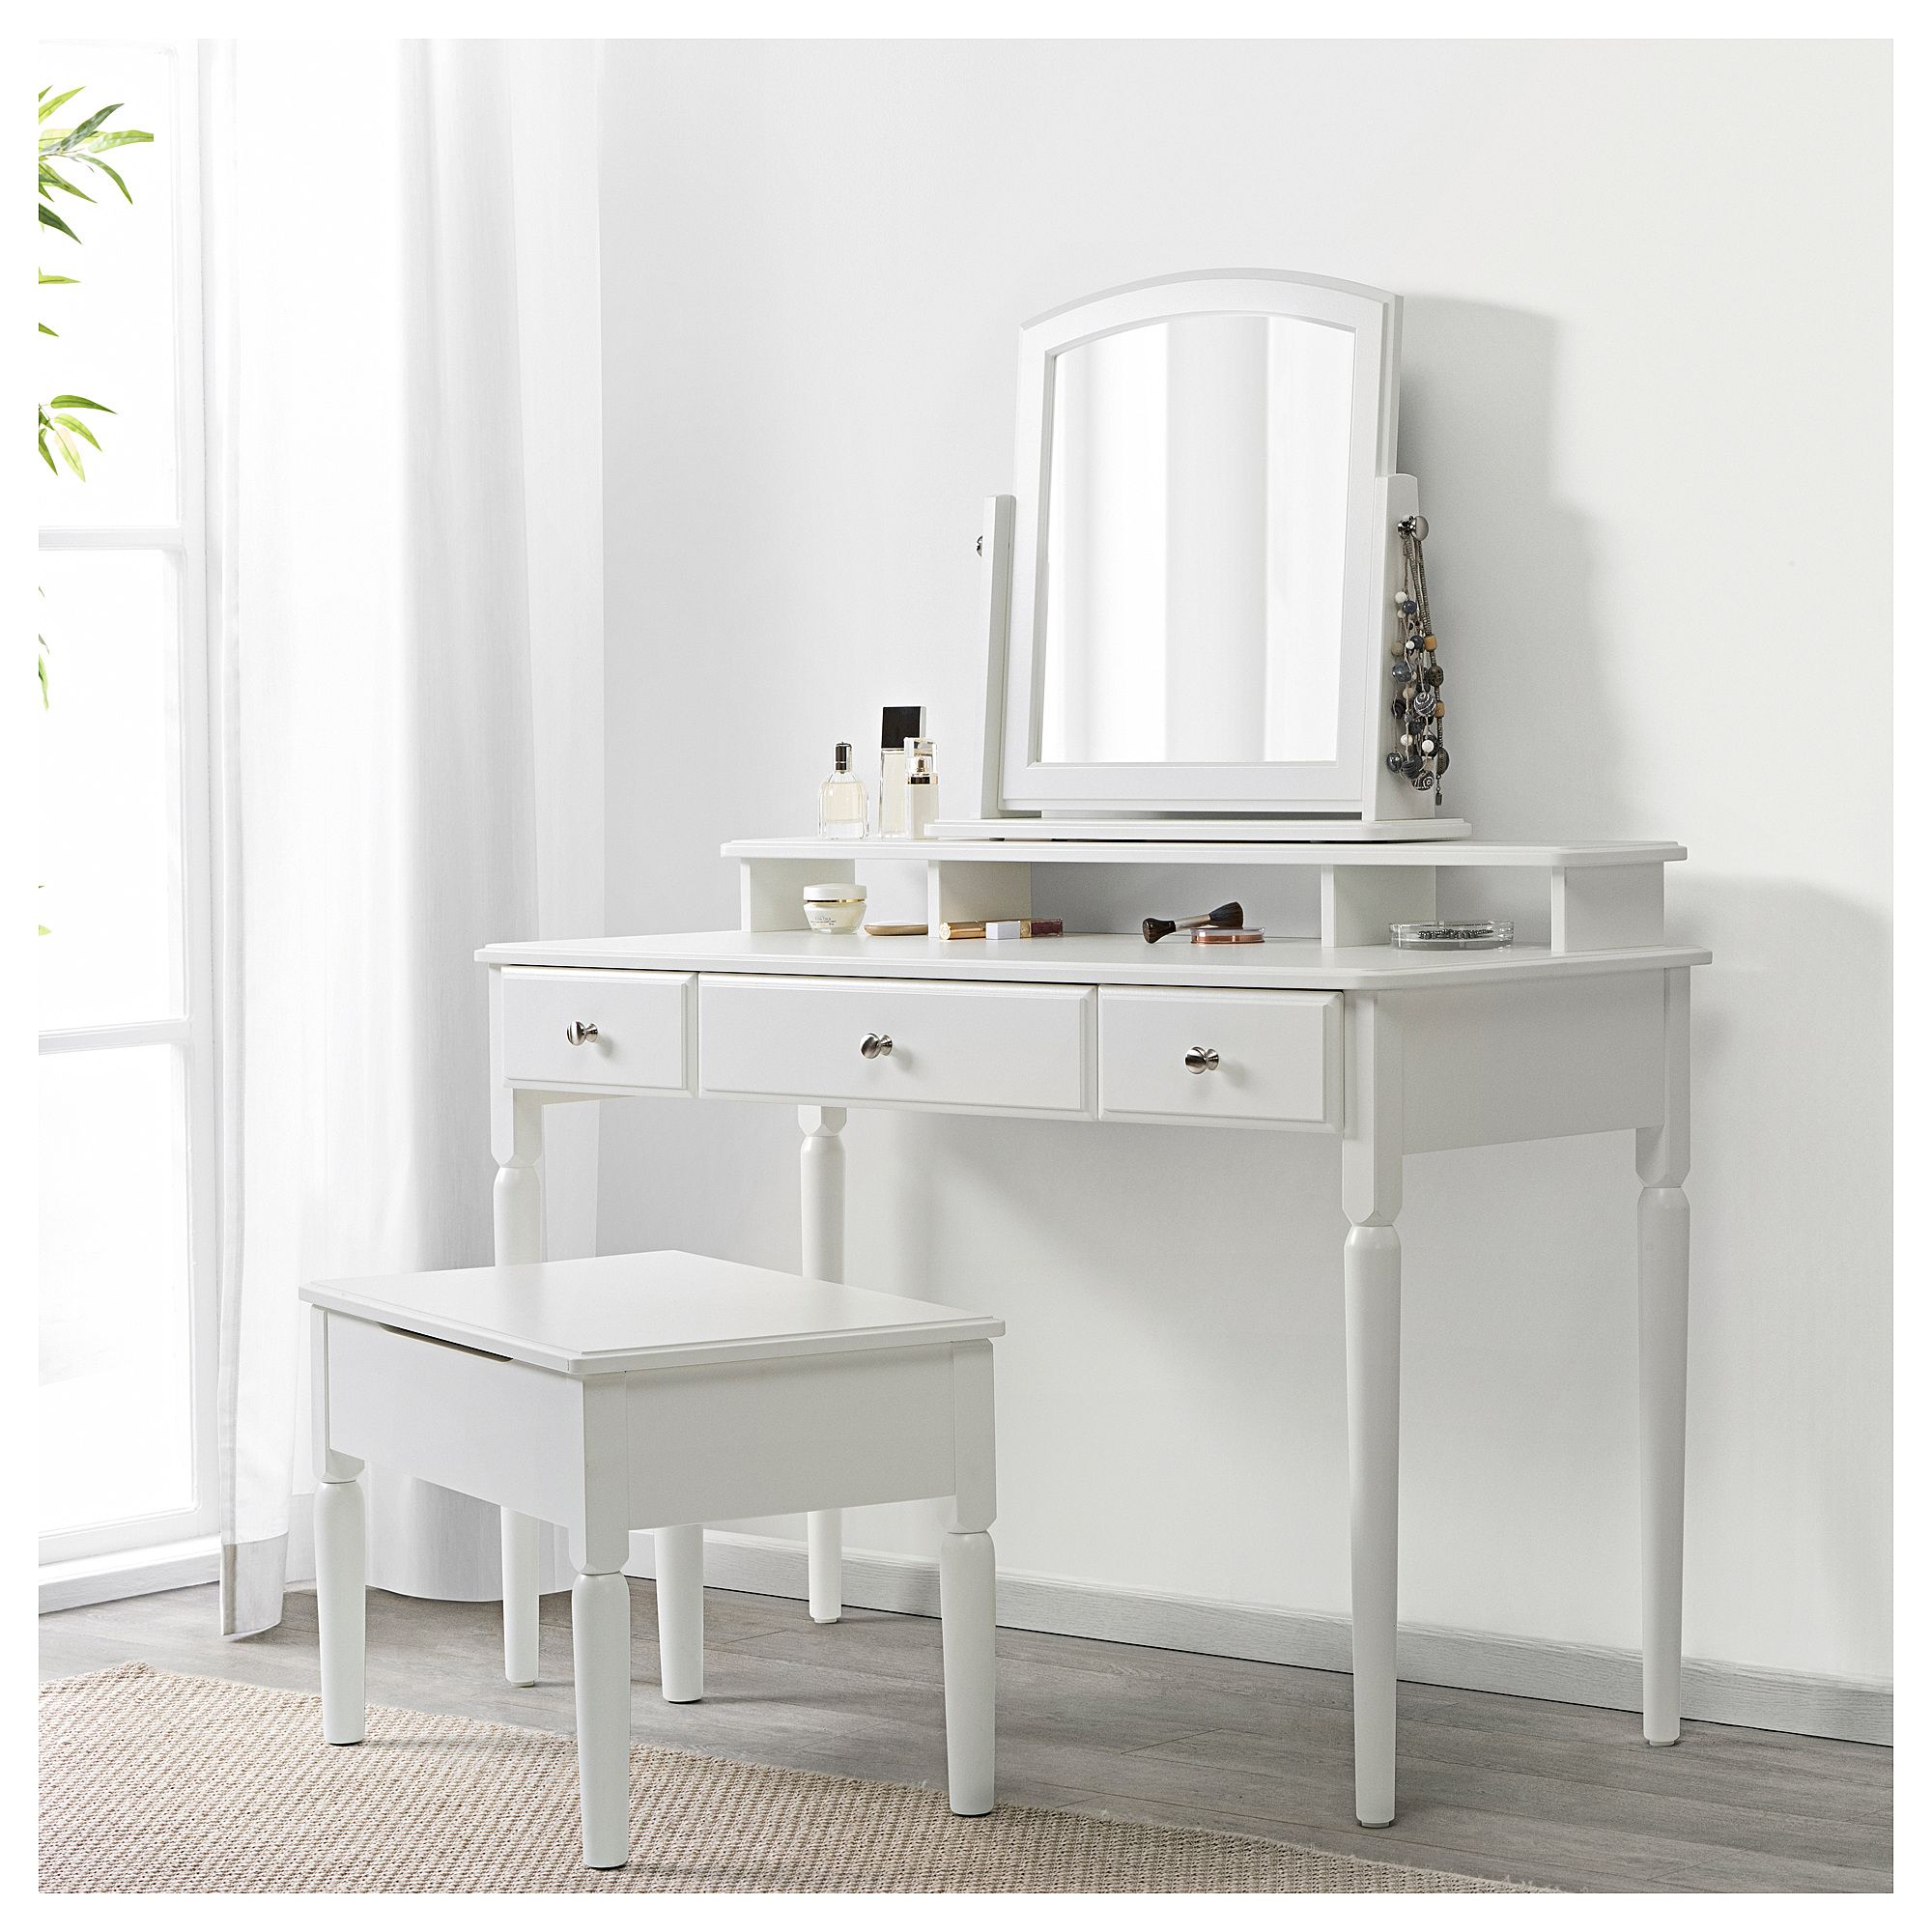 Ikea Dressing Table Ikea Tyssedal Dressing Table White Bedroom Dressing Table